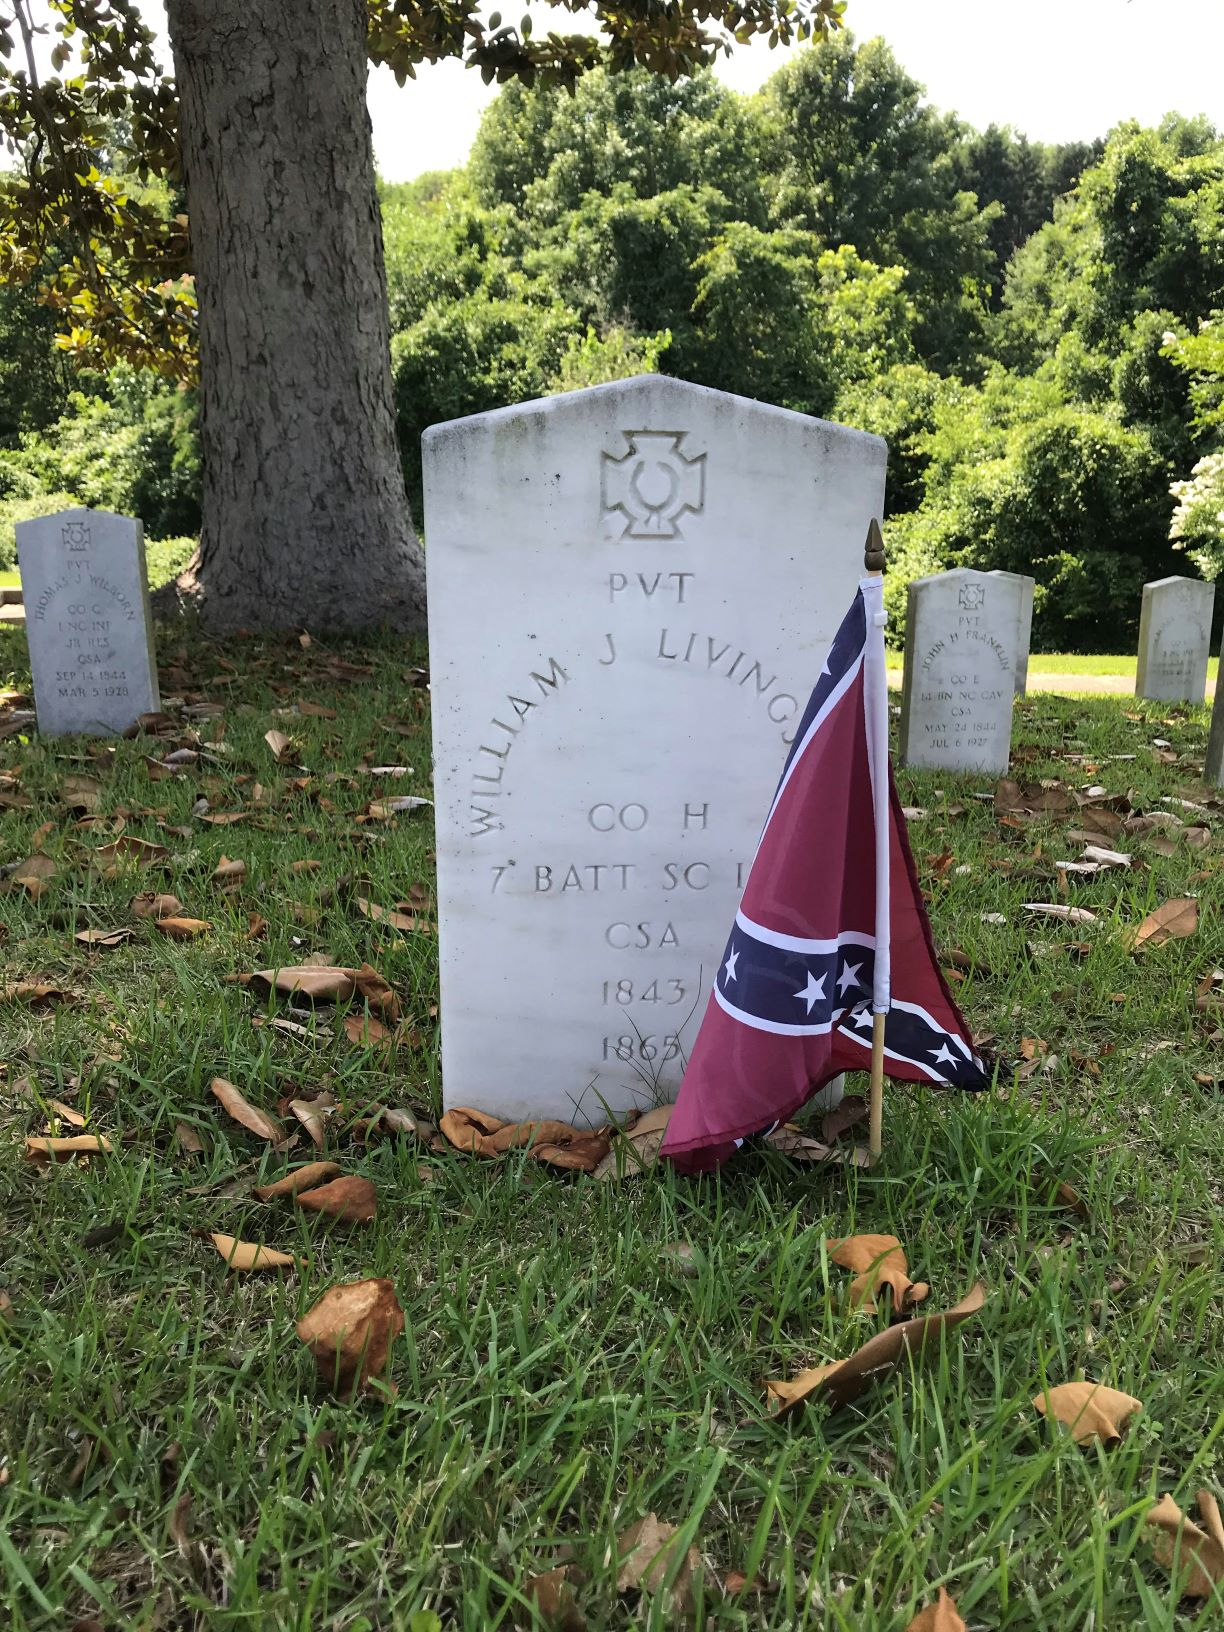 A gravestone decorated with a Stars and Bars flag.